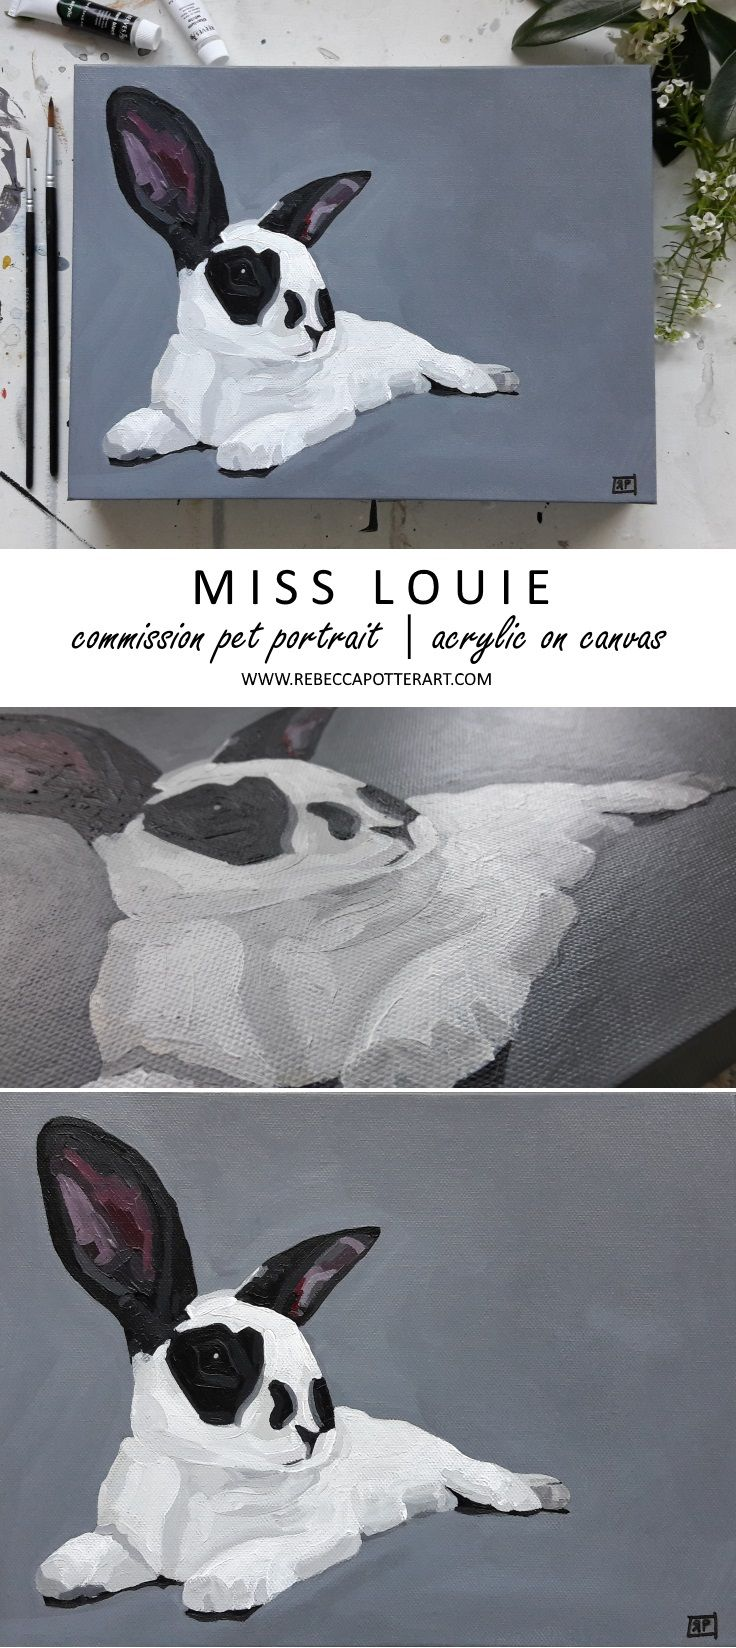 Commission Pet Portrait. Sweet Bunny Miss Louie Acrylic on Canvas Painting 12 x 9 by Rebecca Potter. August 2017. [SOLD]